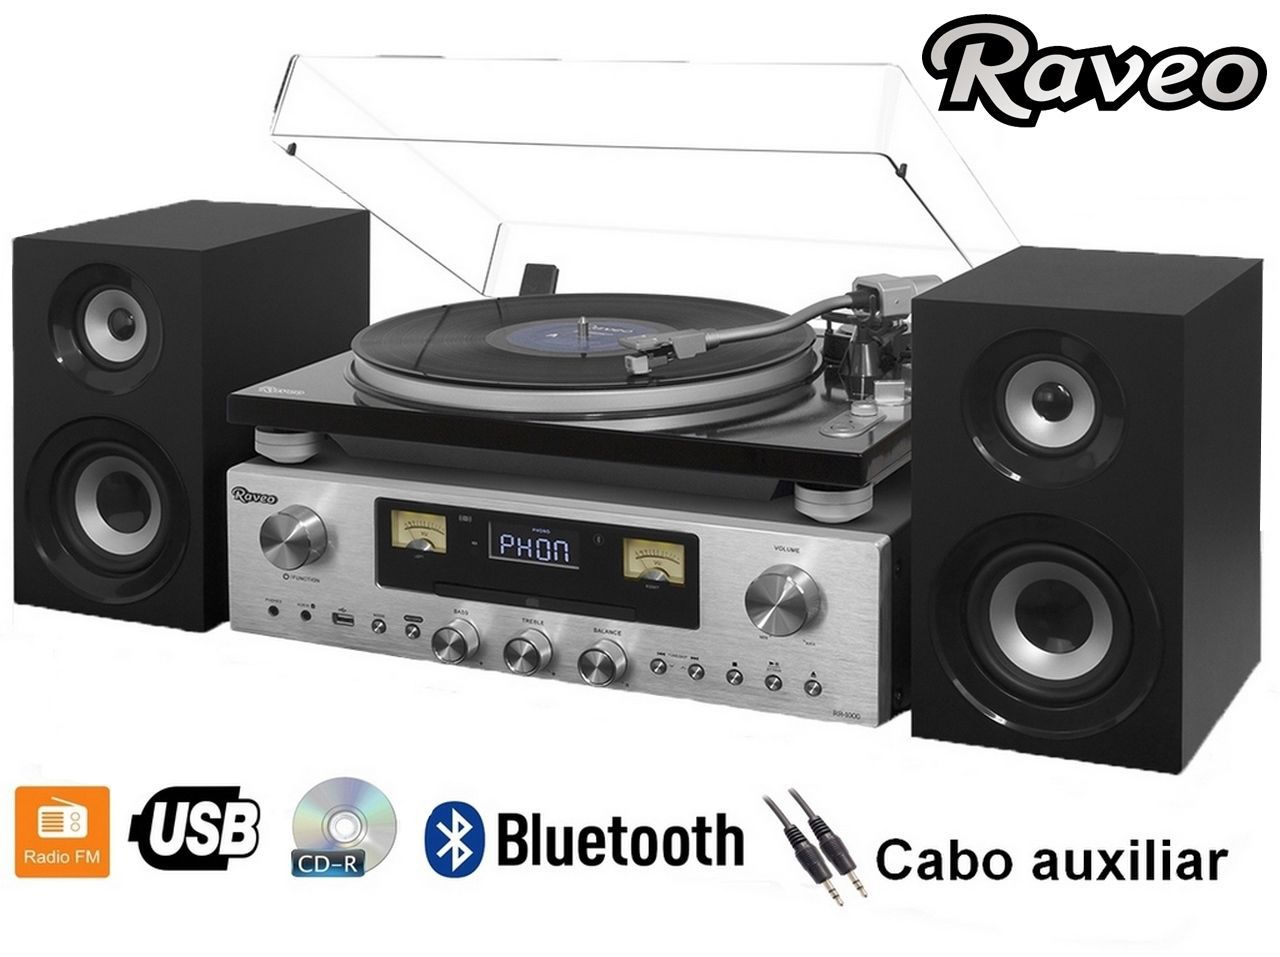 Vitrola Raveo Concert One Com Receiver Toca-discos Cd Player Fm Bluetooth Nfc Usb Reproduz E Grava 80W